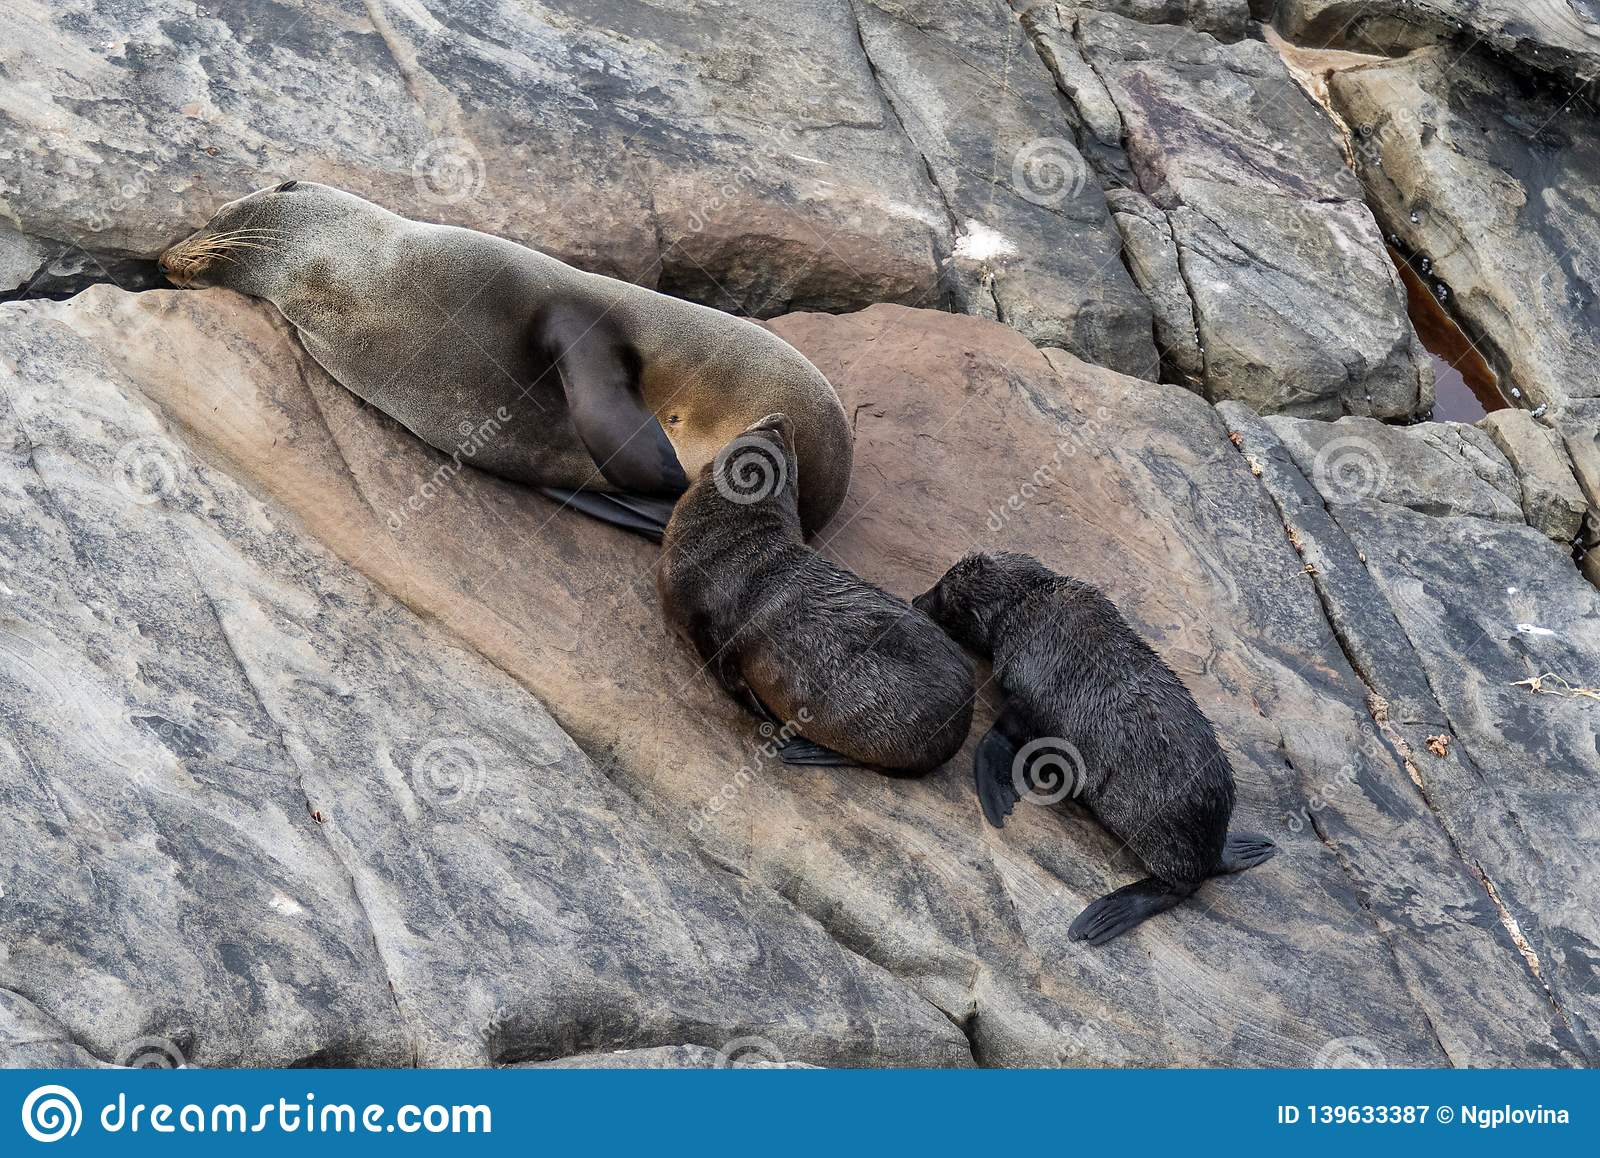 New Zealand Fur Seal, Arctocephalus forsteri, long-nosed fur seal feeds its baby puppy. Australasian fur seal, South